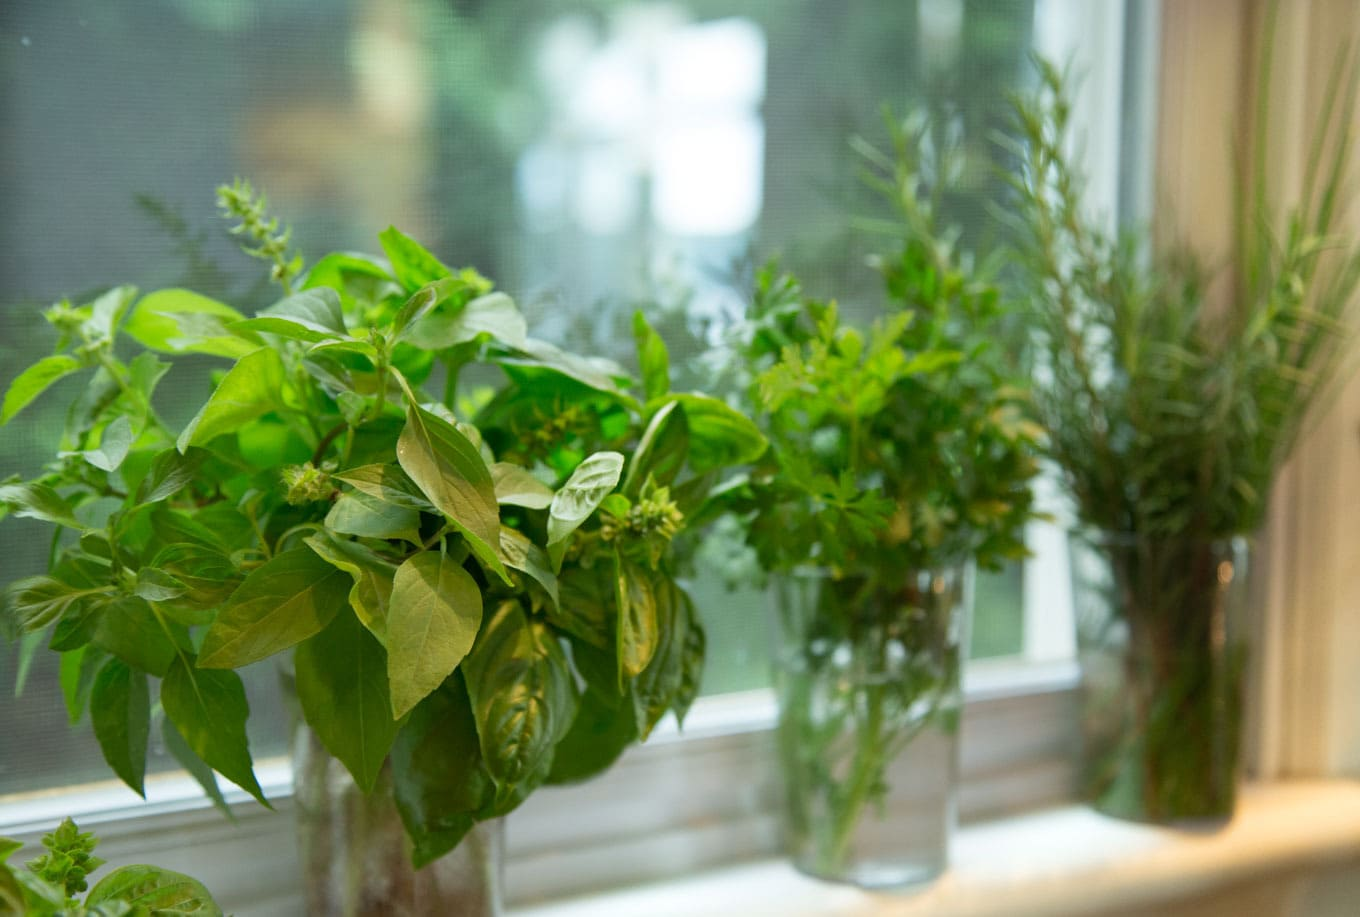 My Favorite Trick for Summer Herbs - How to have fresh herbs in your kitchen and at your fingertips all summer long! thecafesucrefarine.com